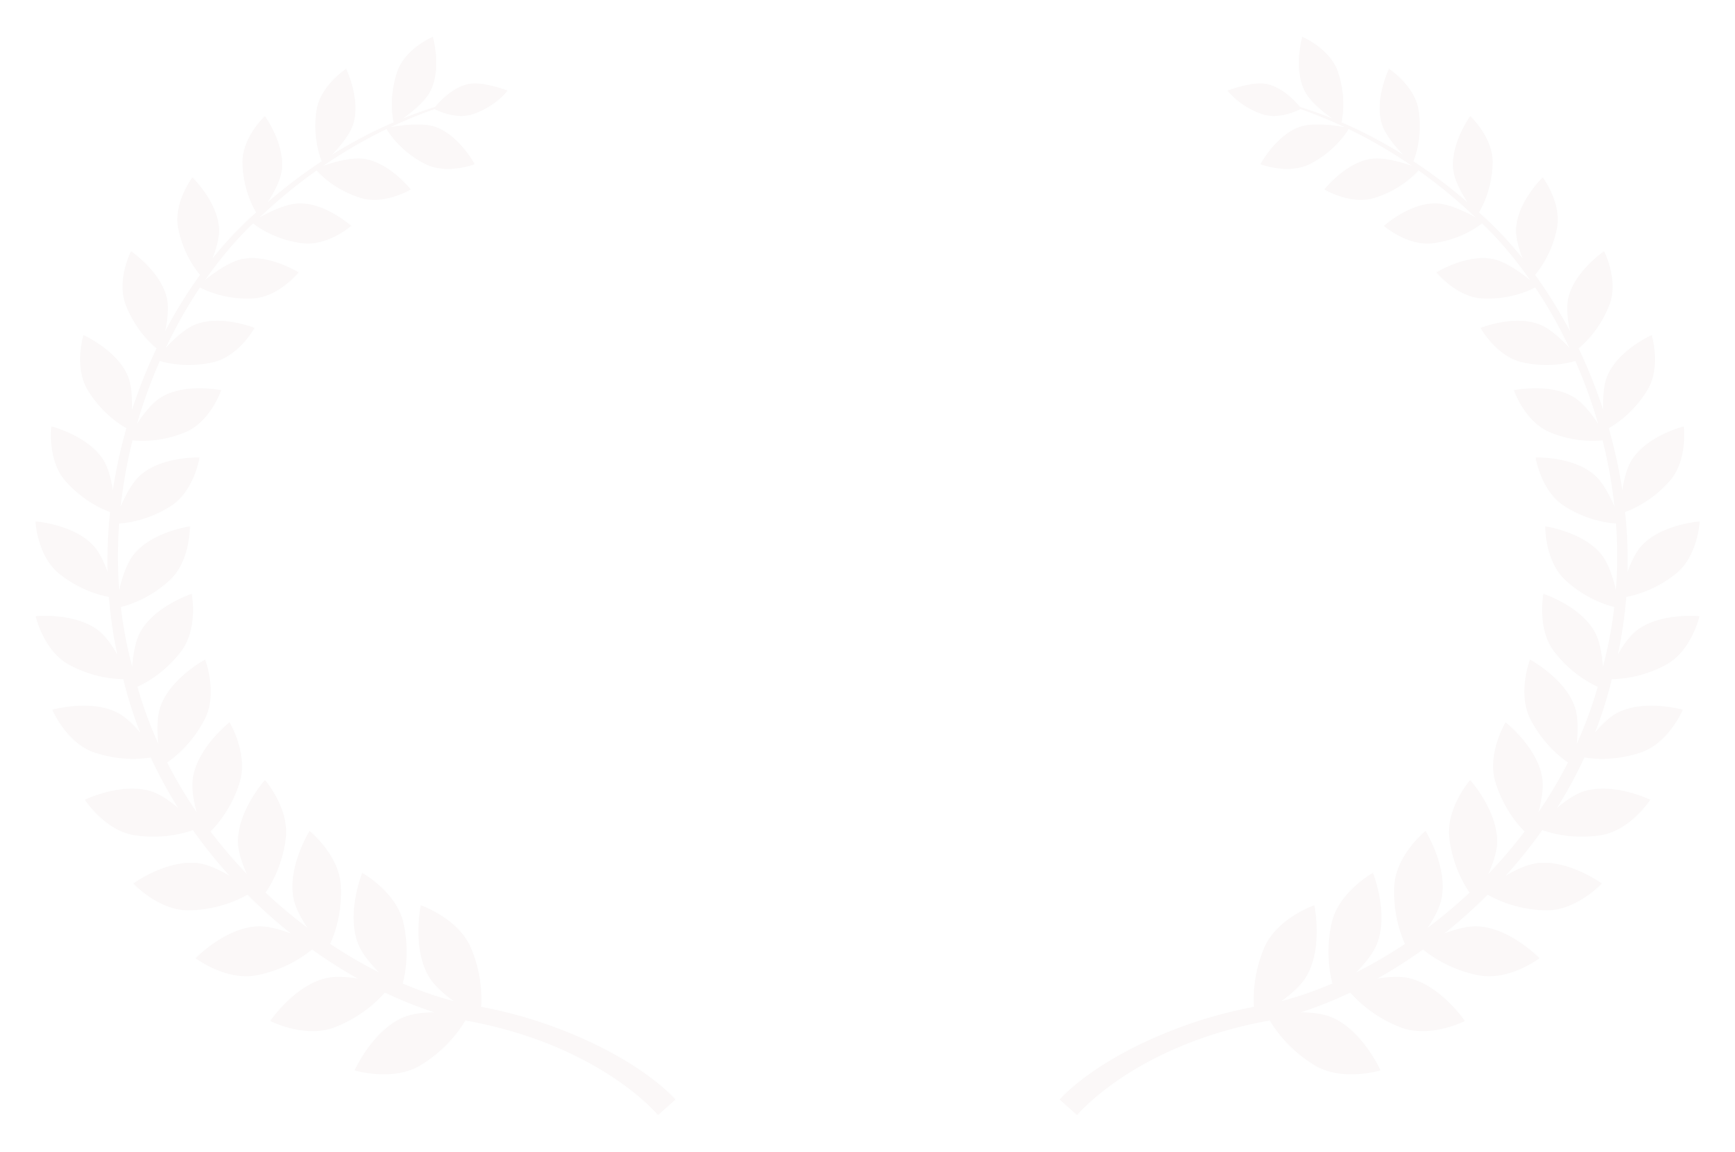 OFFICIAL SELECTION - Underground FilmFest - 2017 Transparent.png